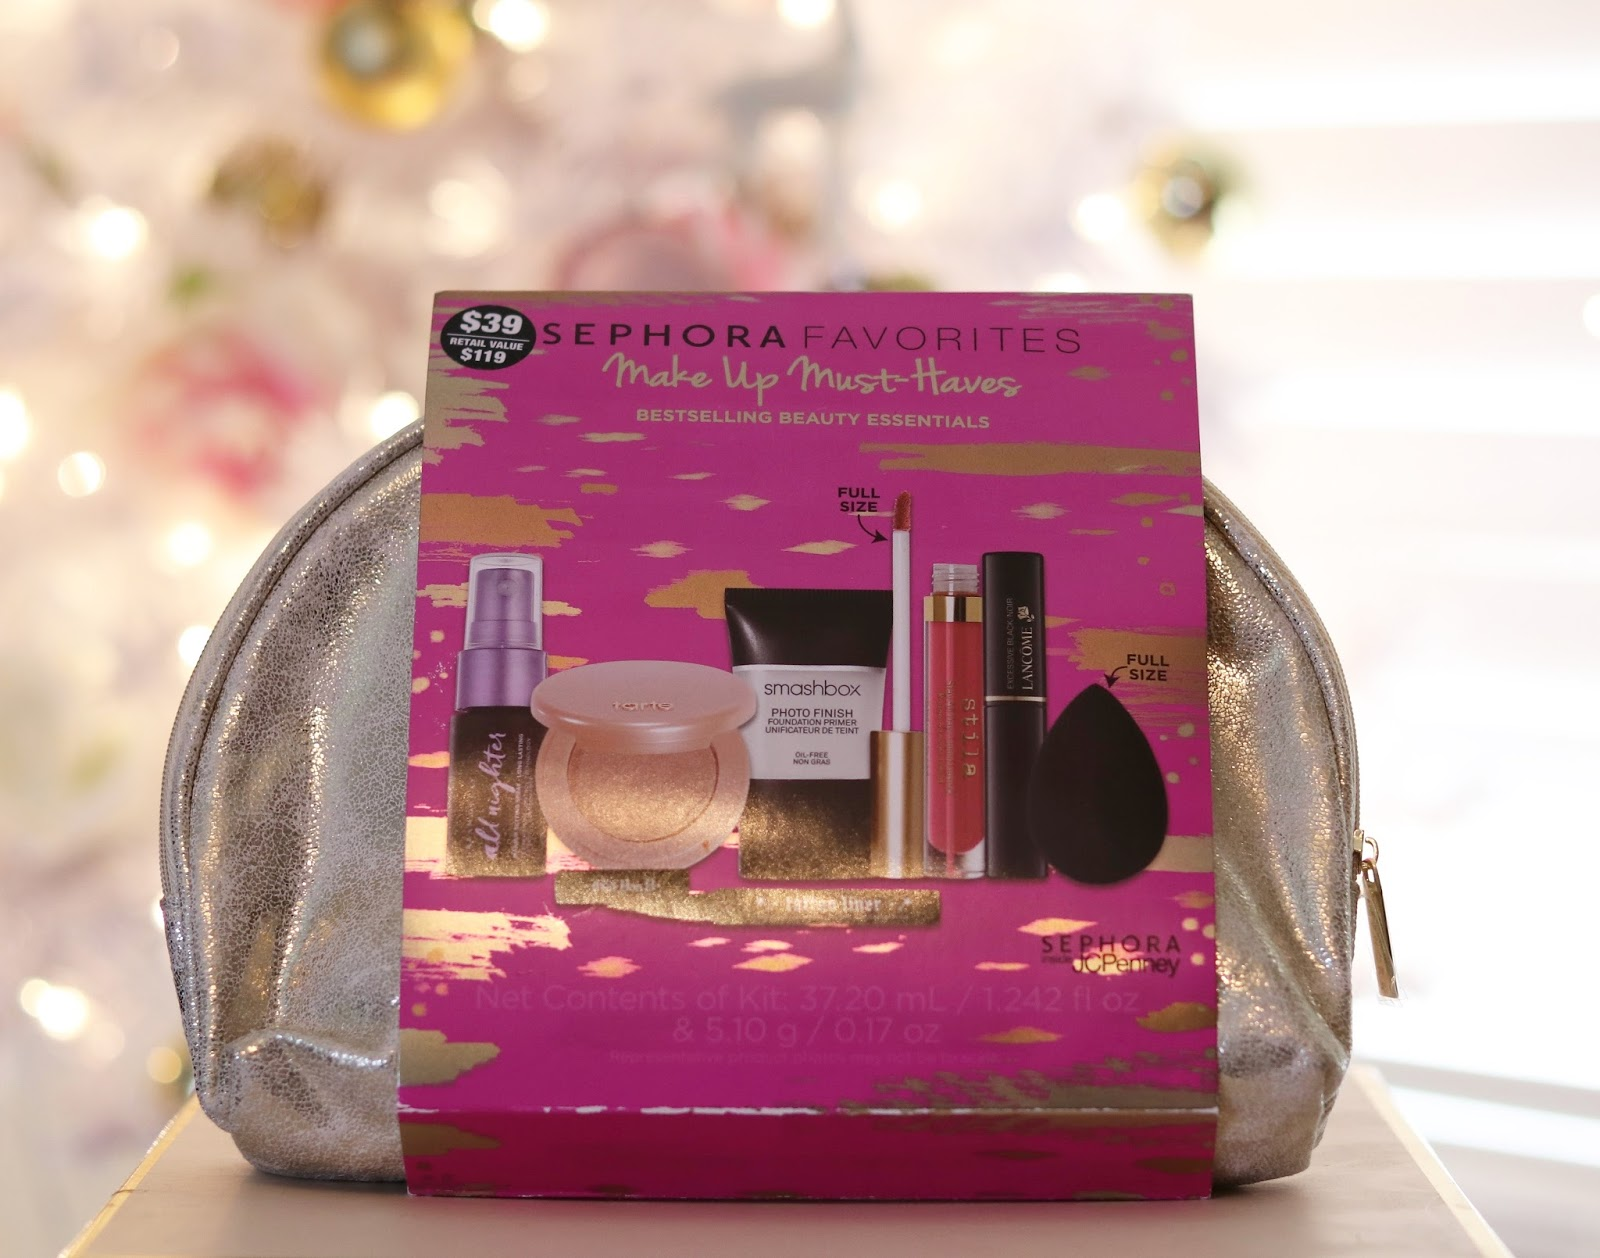 """Sephora Favorites """"Twinkle All the Way"""", Sephora inside JCPenney products, San Diego beauty bloggers"""